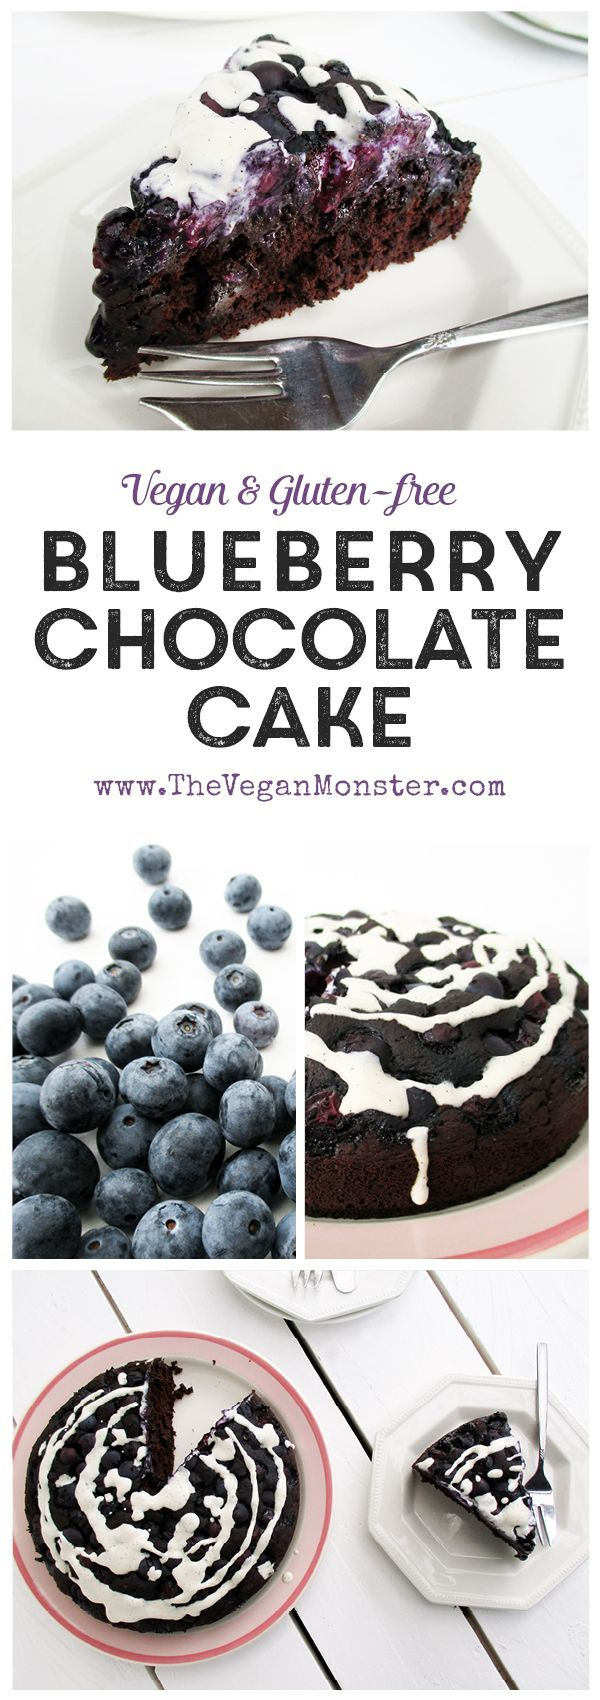 Blueberry Chocolate Cake, Vegan, Gluten-free, Without Refined Sugar, Low Fat :) #desertlife